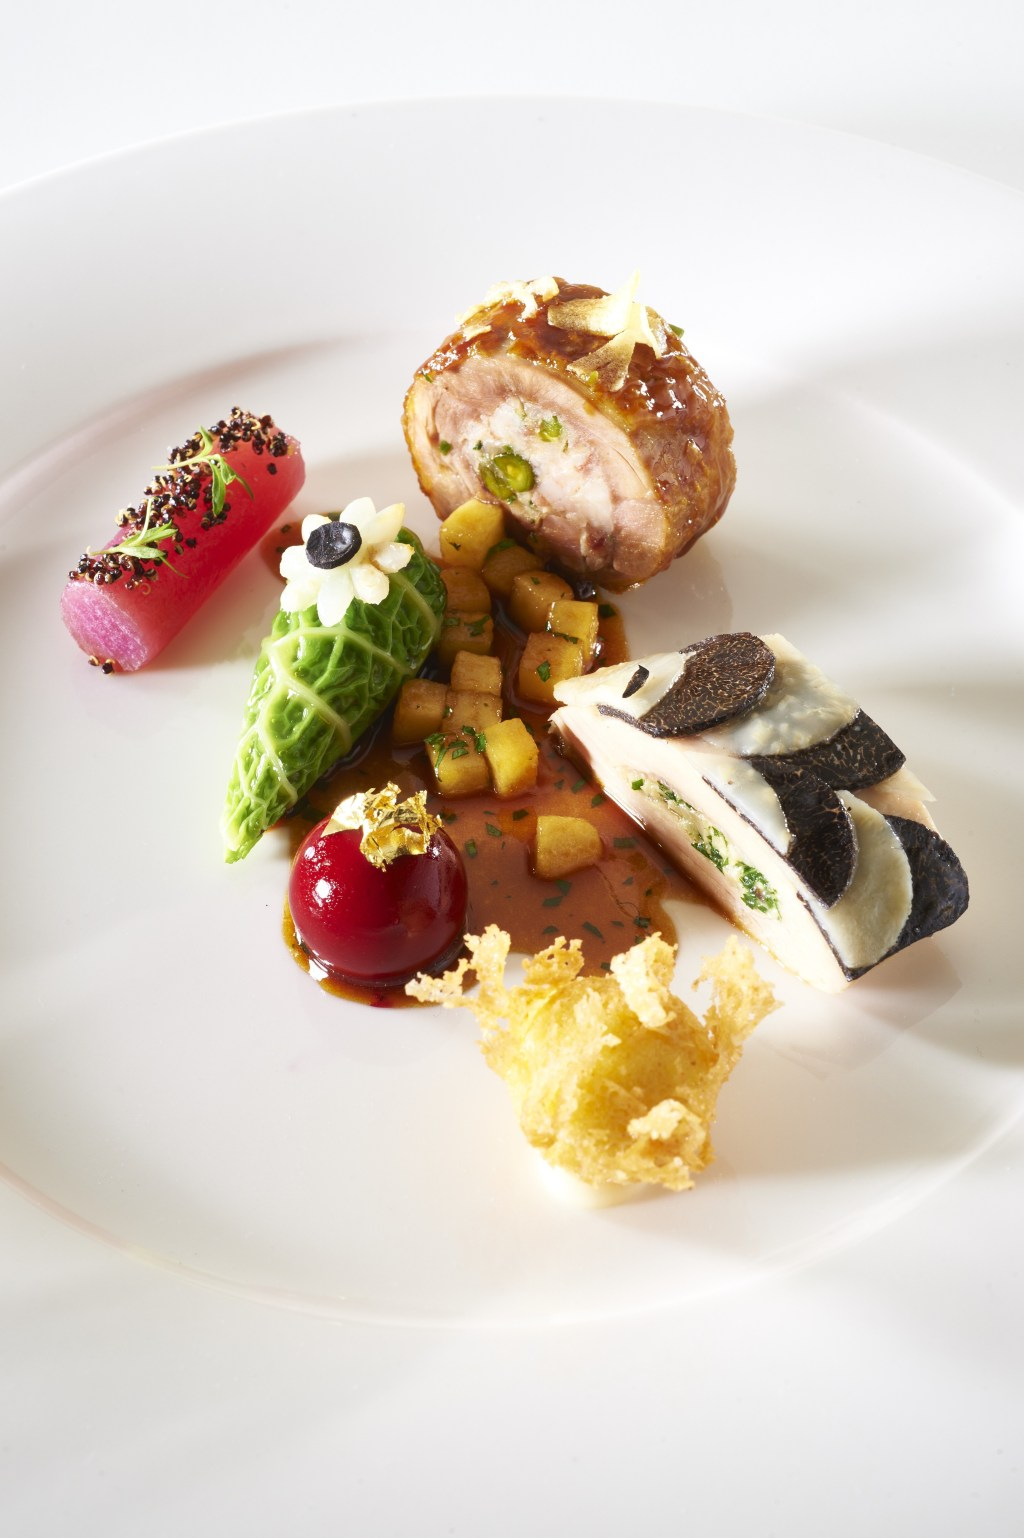 The UK meat dish, Bocuse d'Or 2015